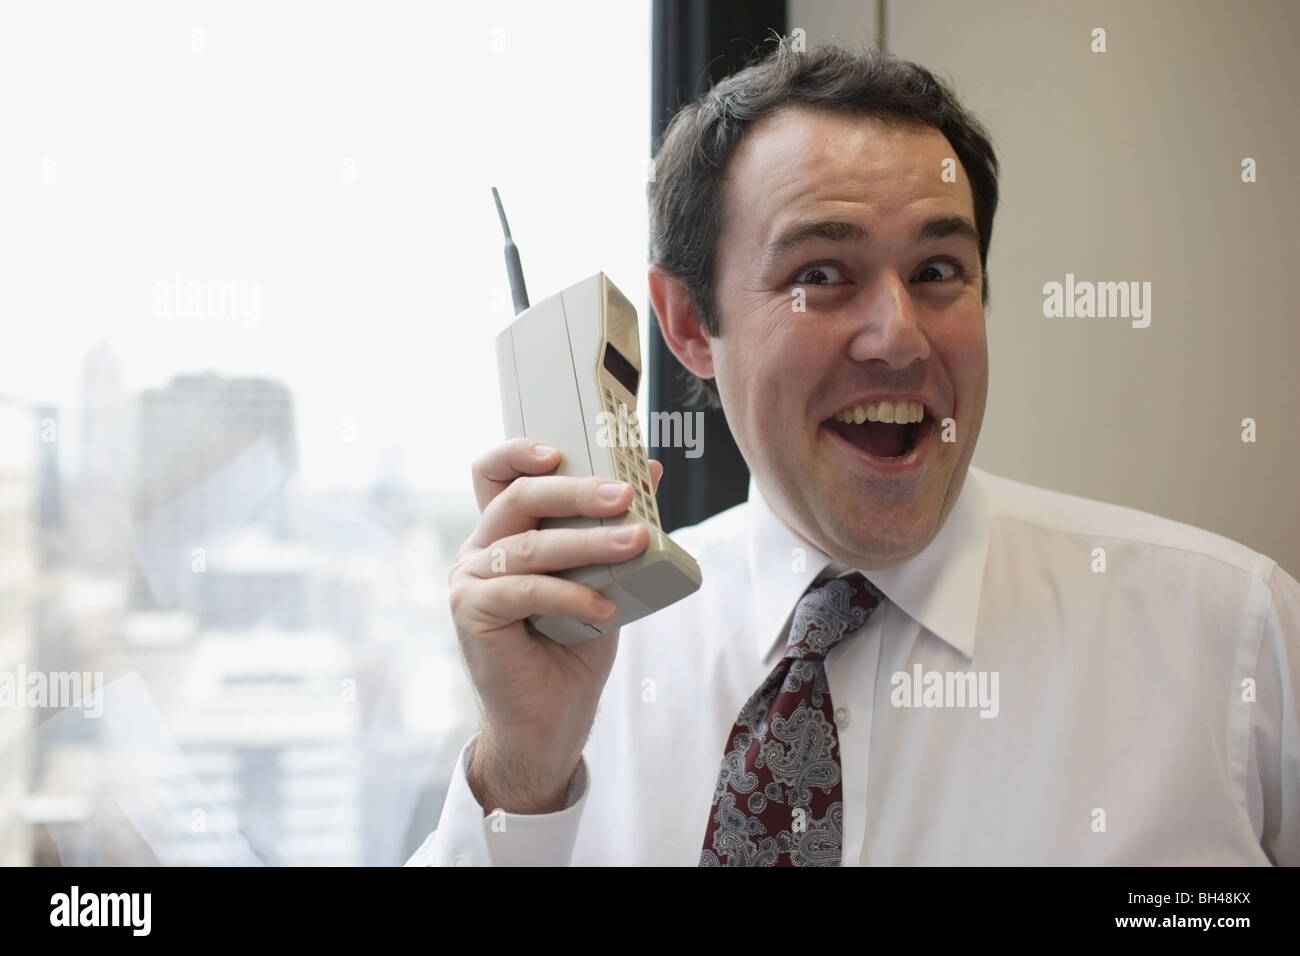 Businessman holding an old mobile telephone, laughing - Stock Image